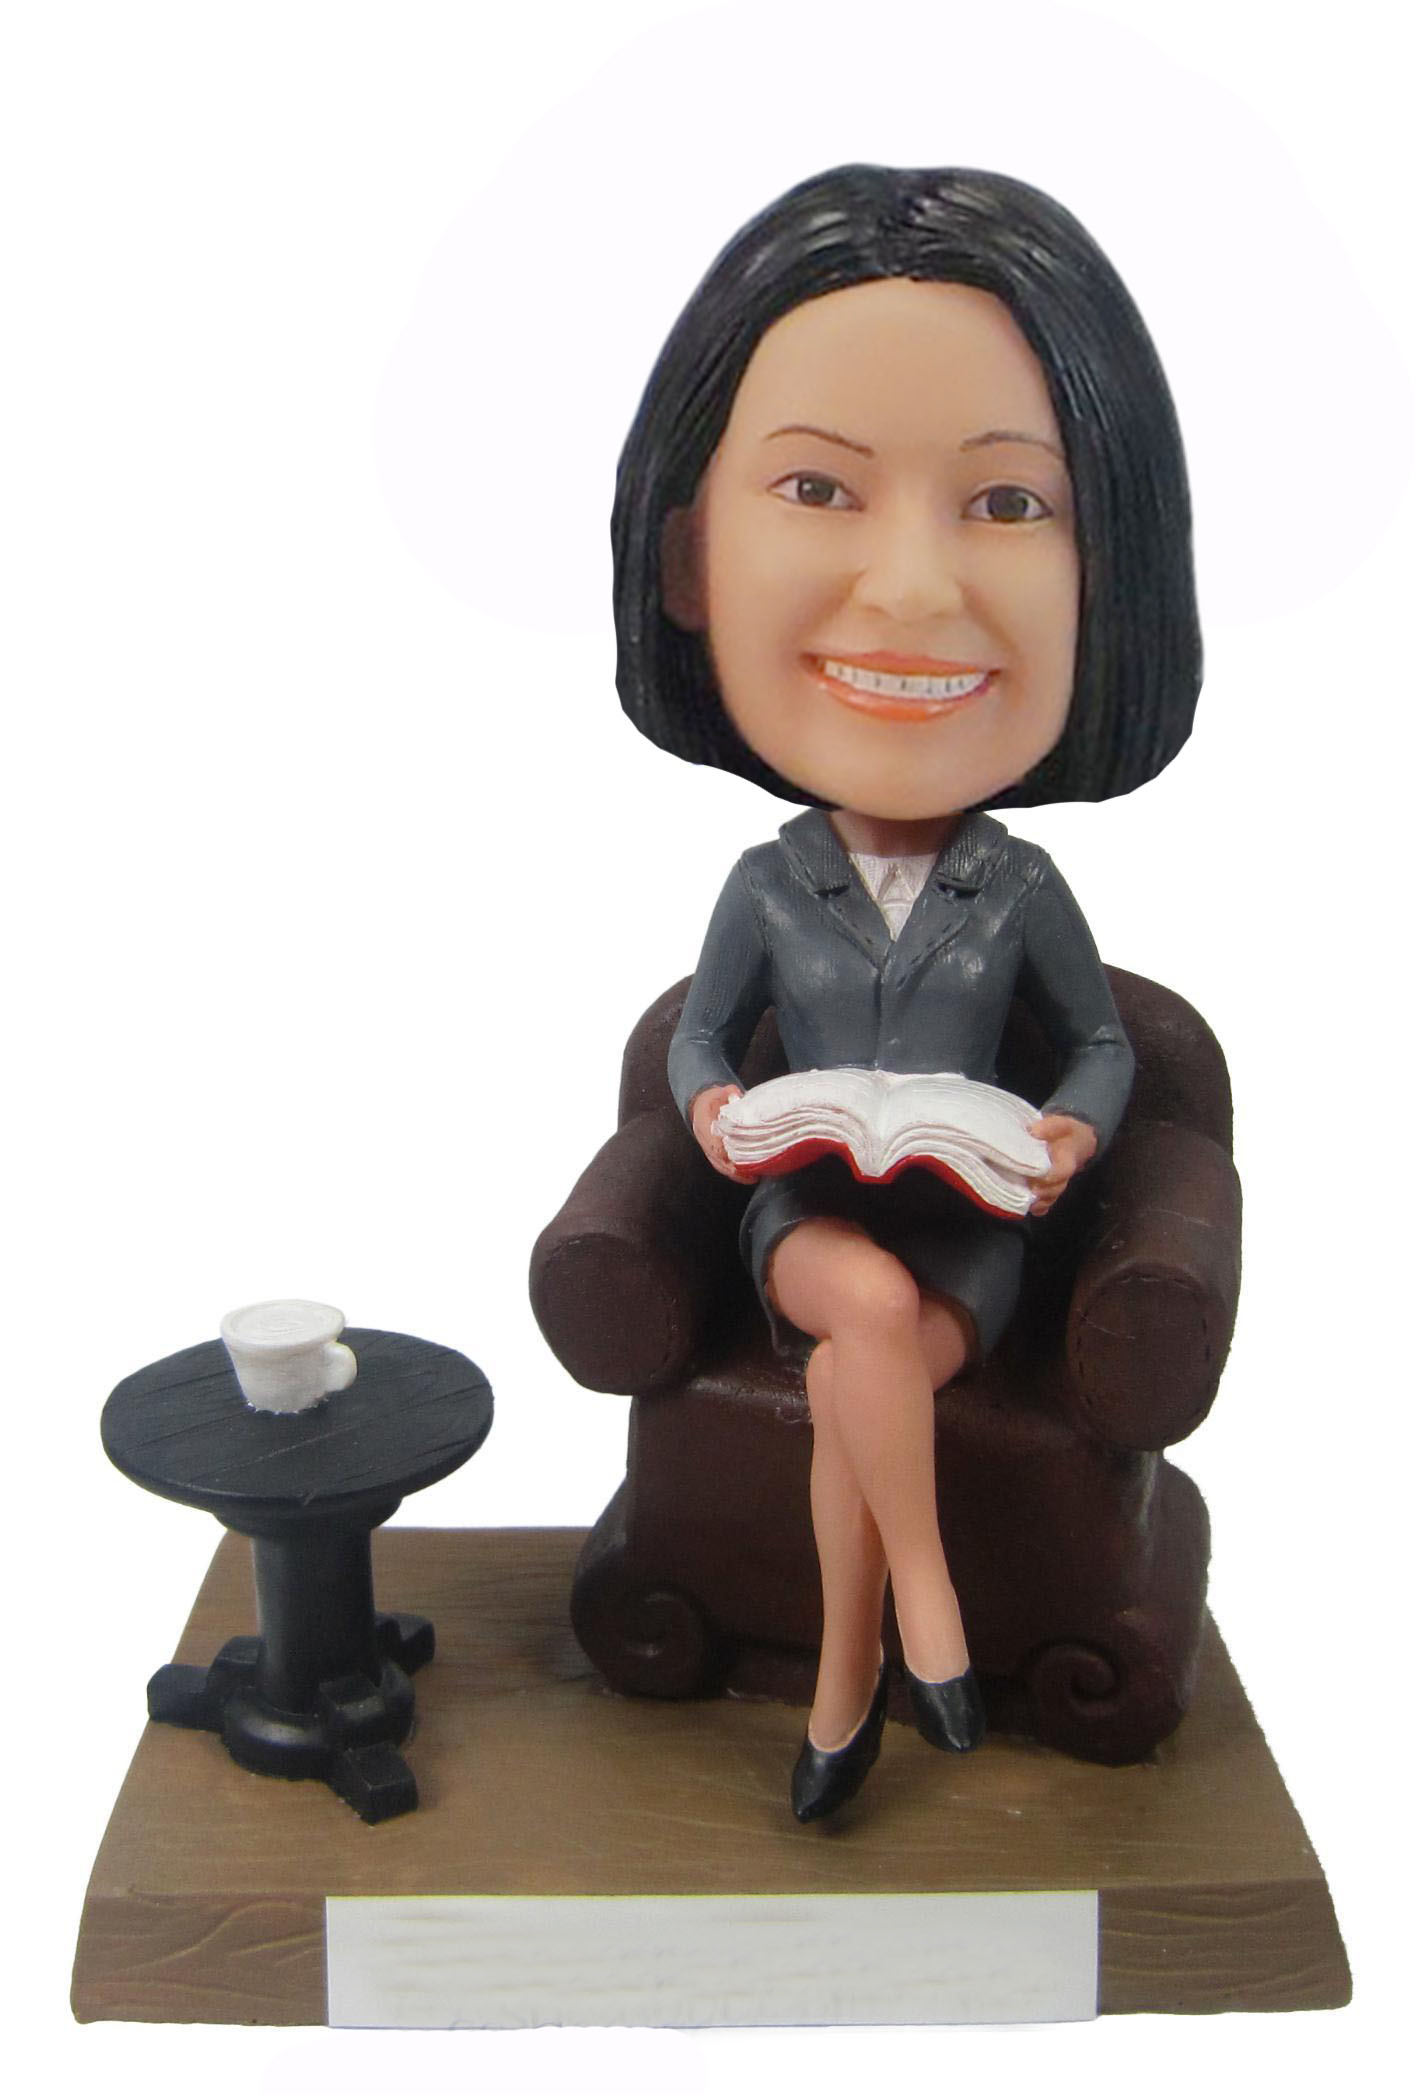 Female Bushiness Skirt Suit With Chair Bobble heads